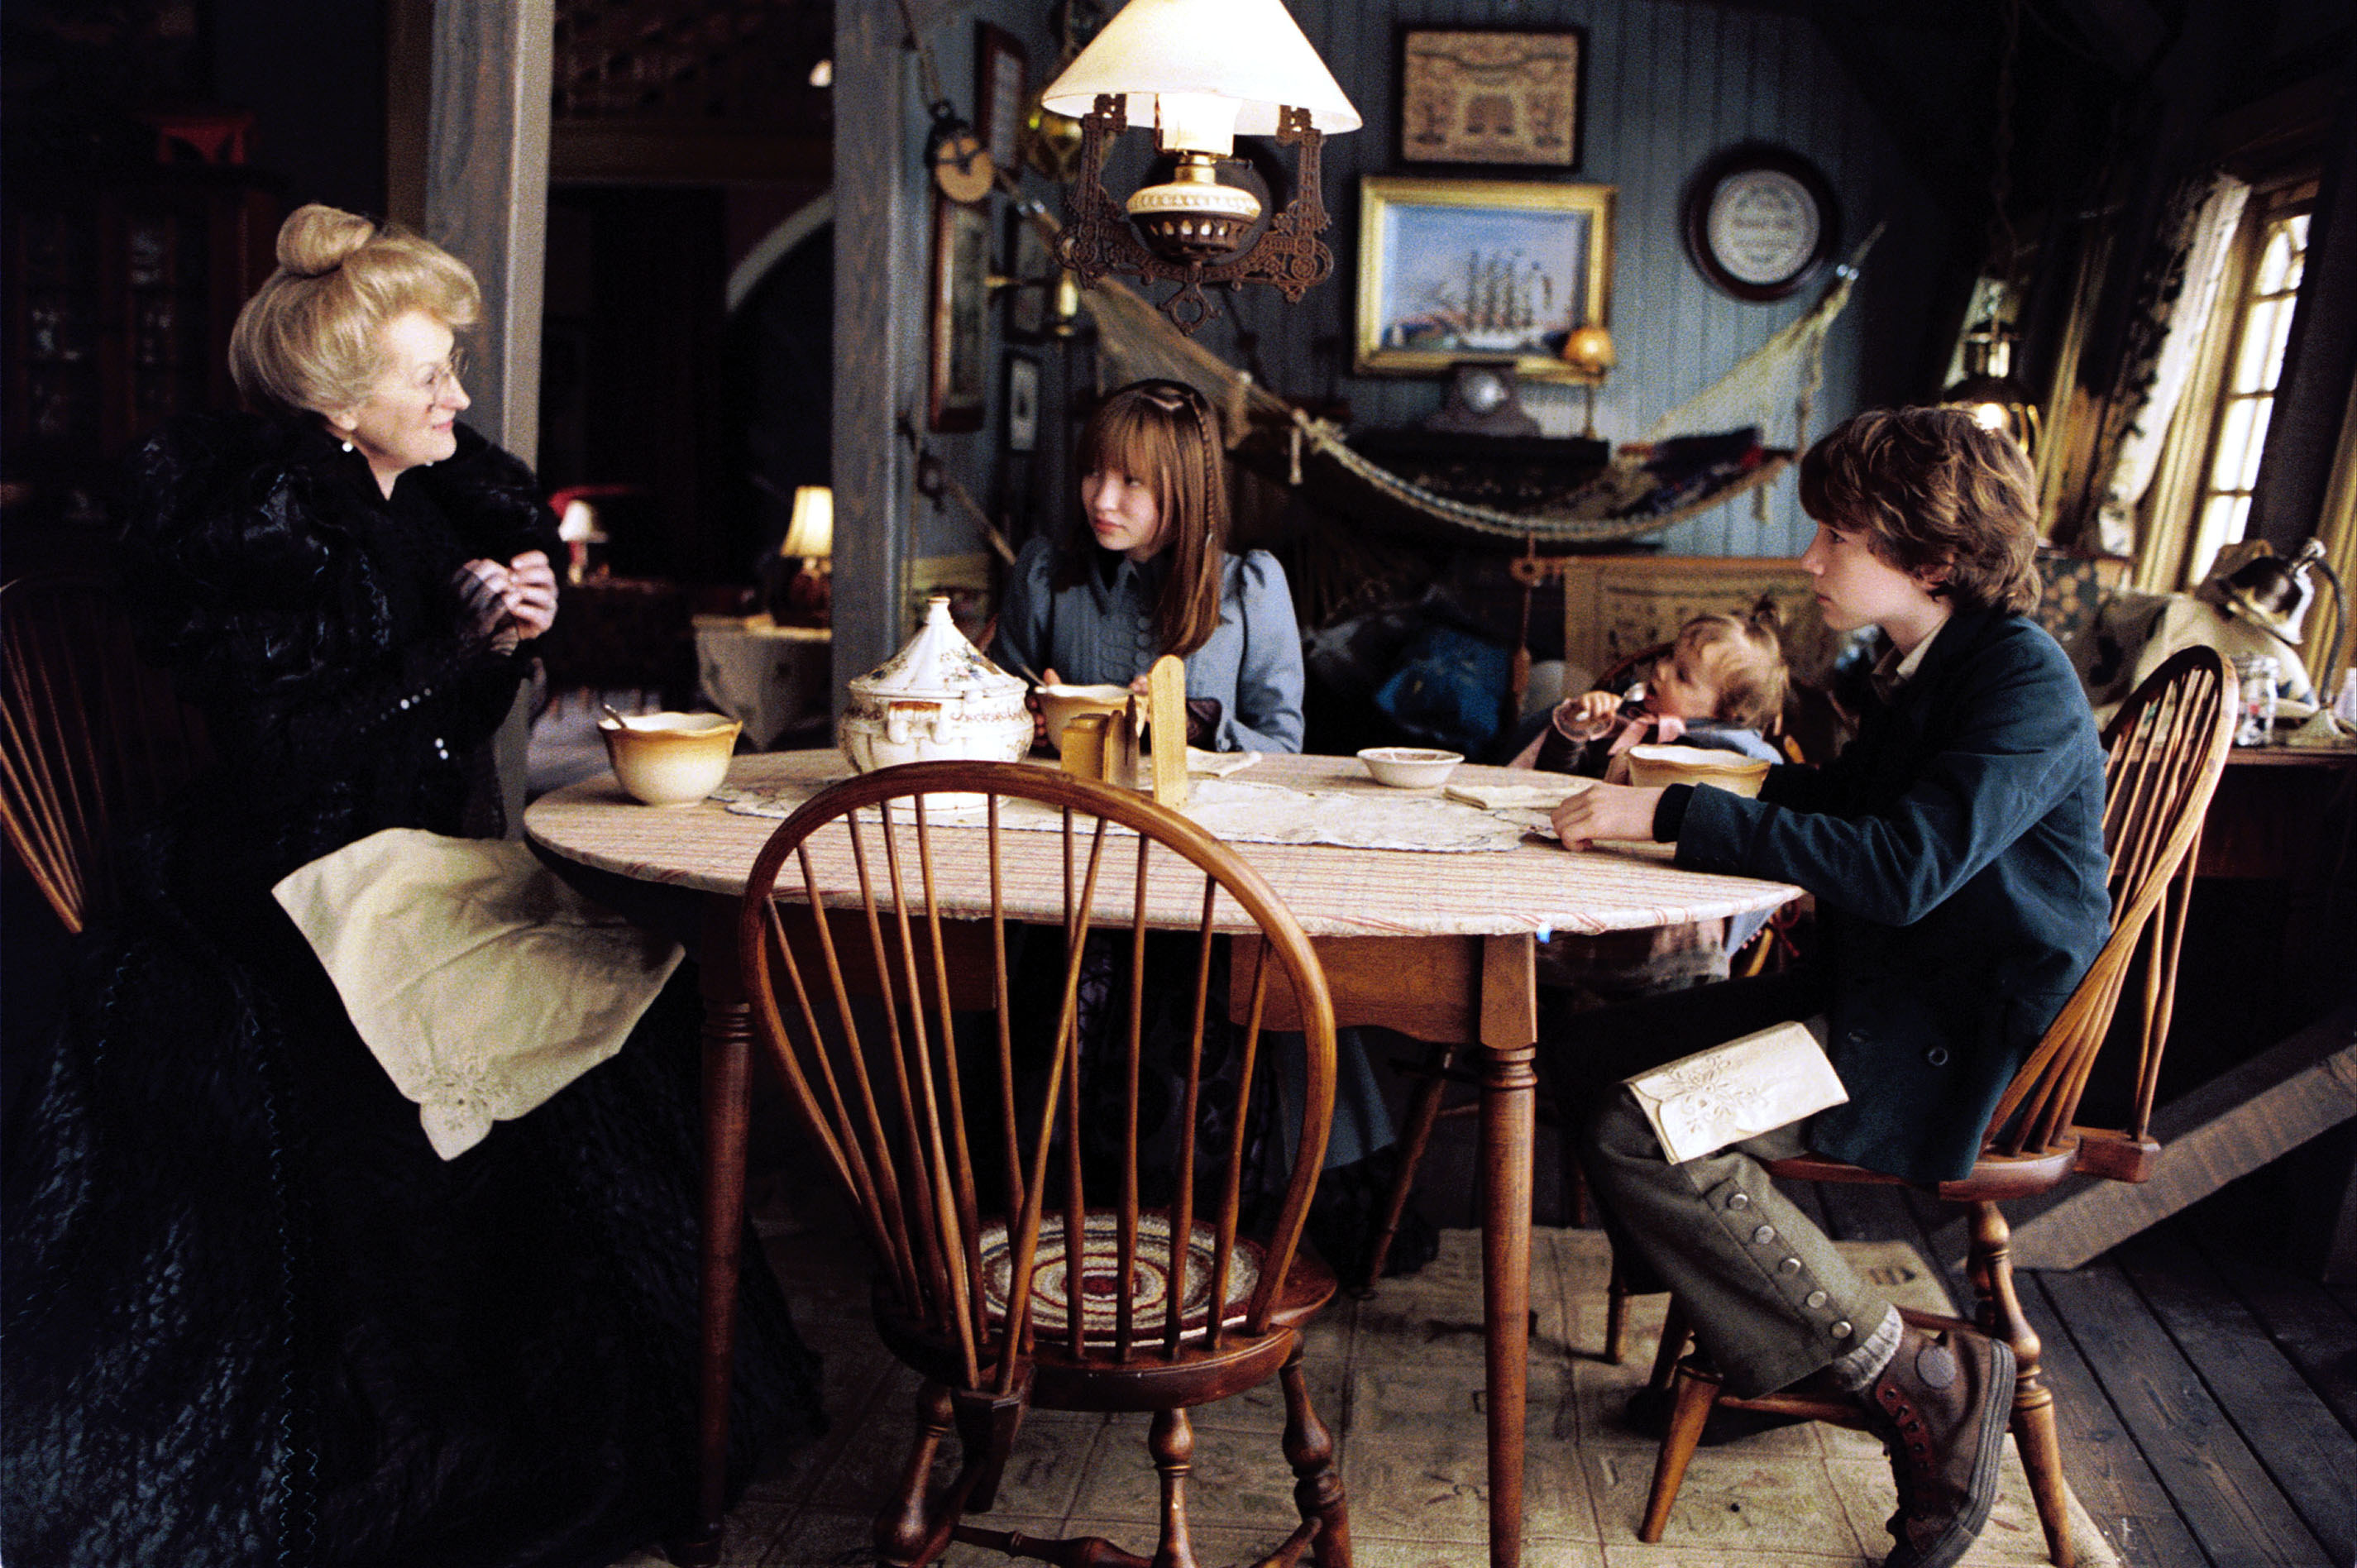 The Baudelaire orphans sit with their aunt, Josephine Anwhistle